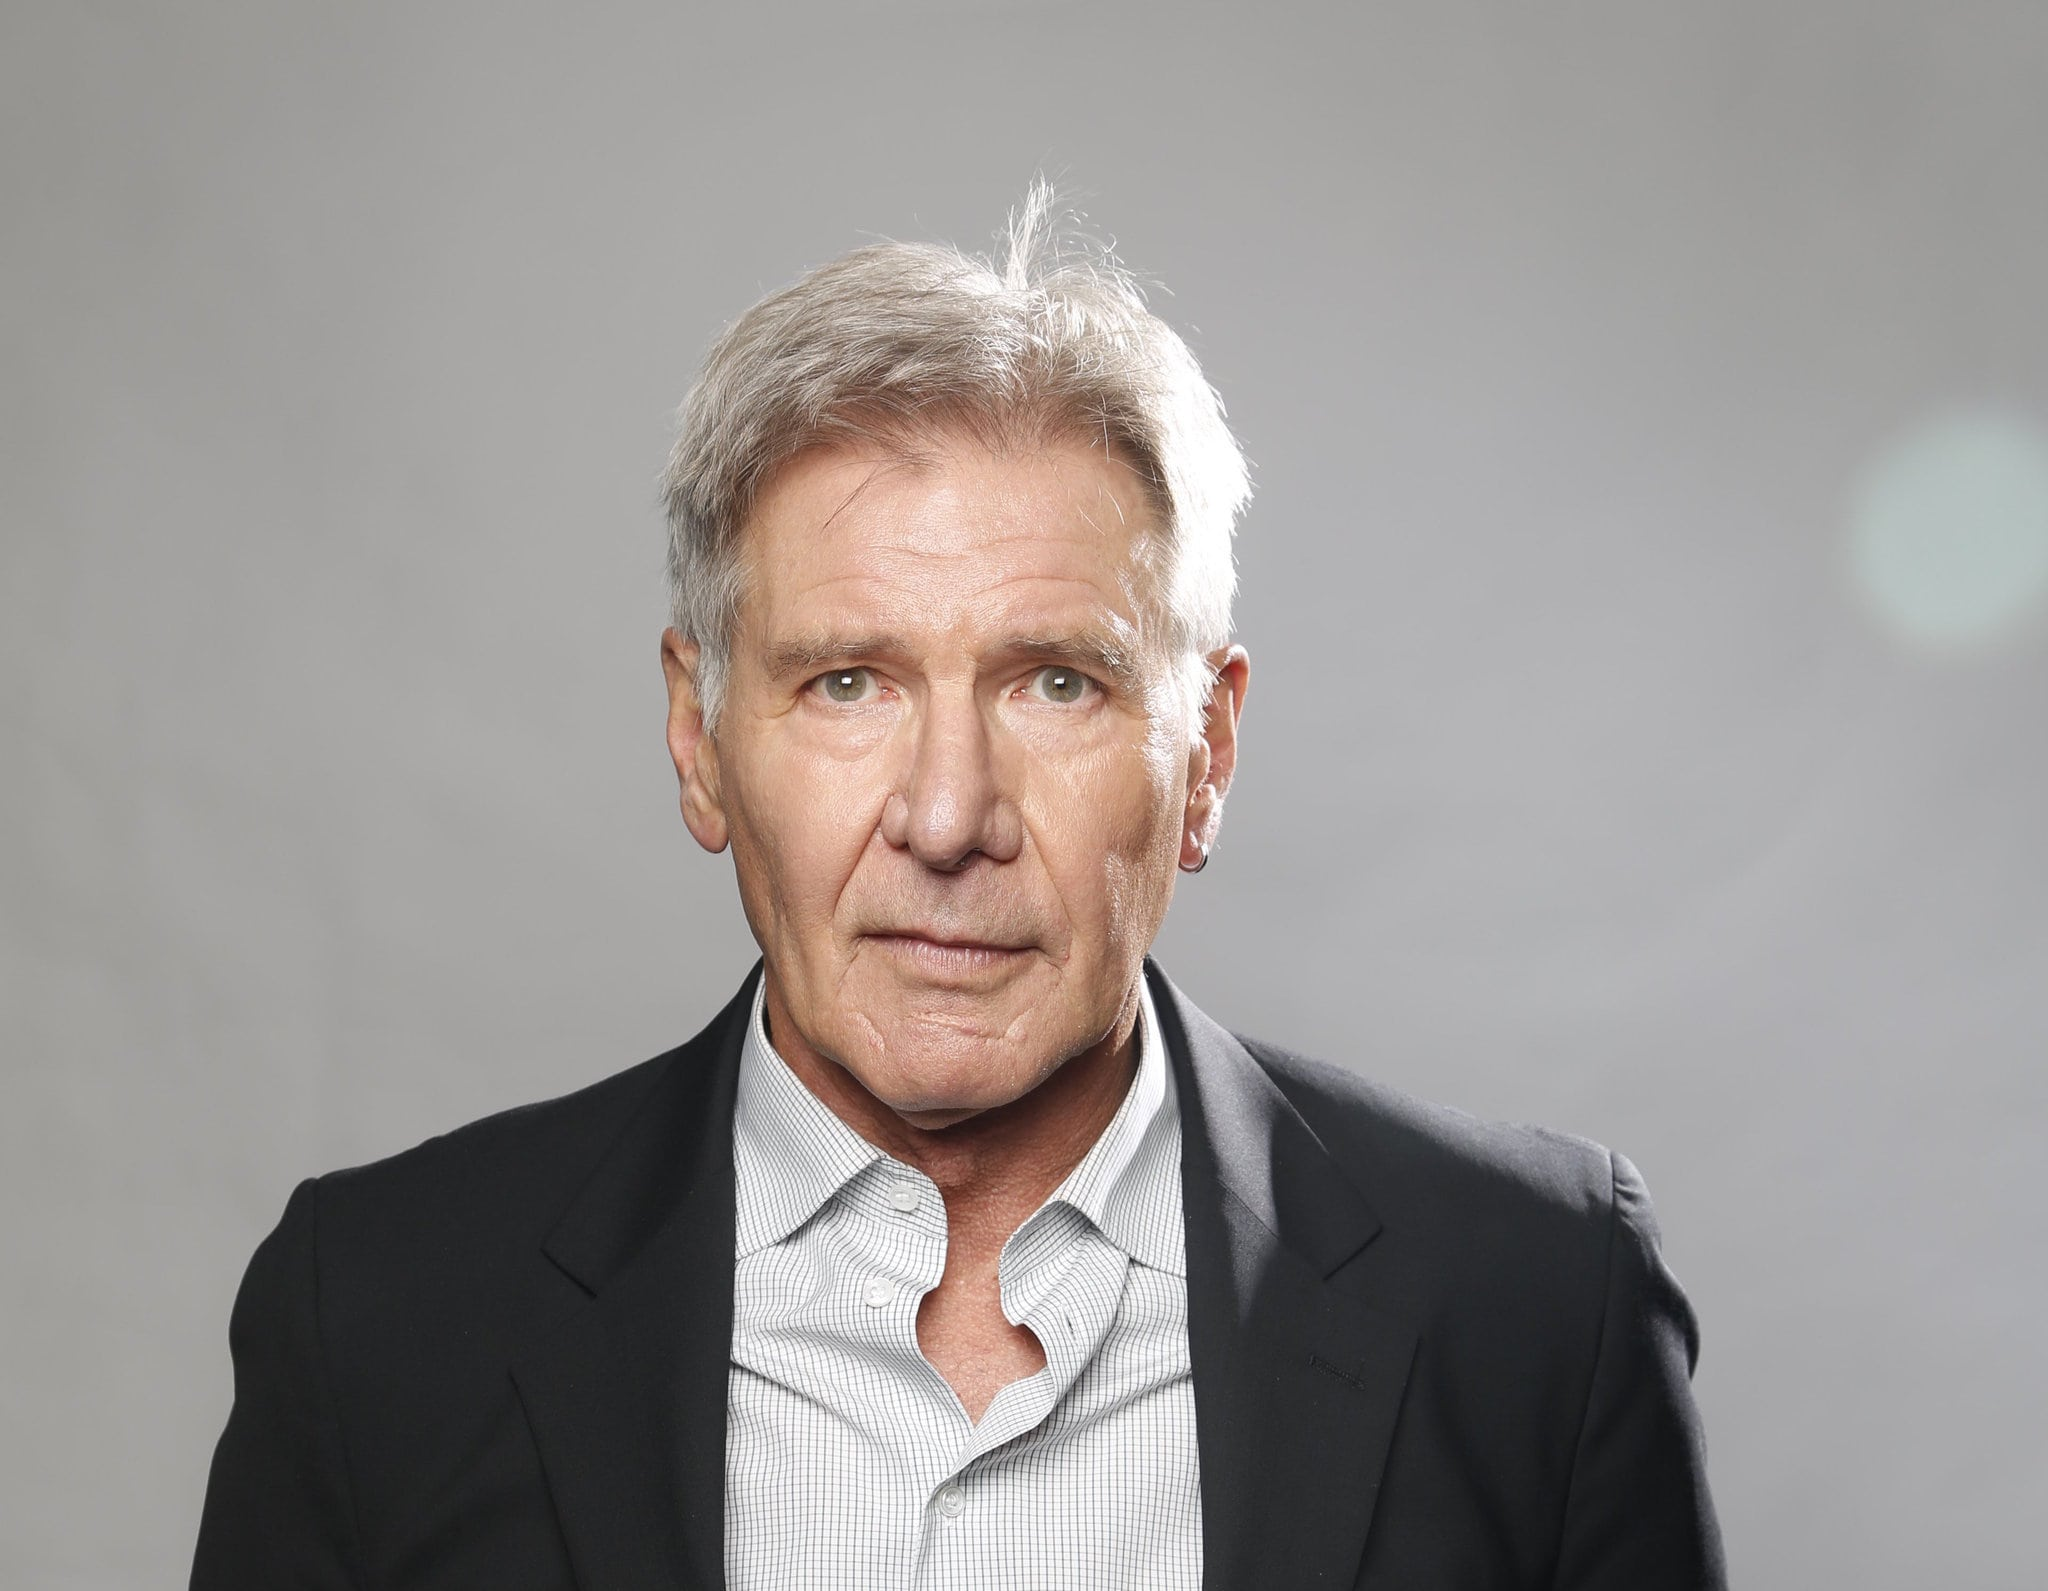 Harrison Ford HQ wallpapers